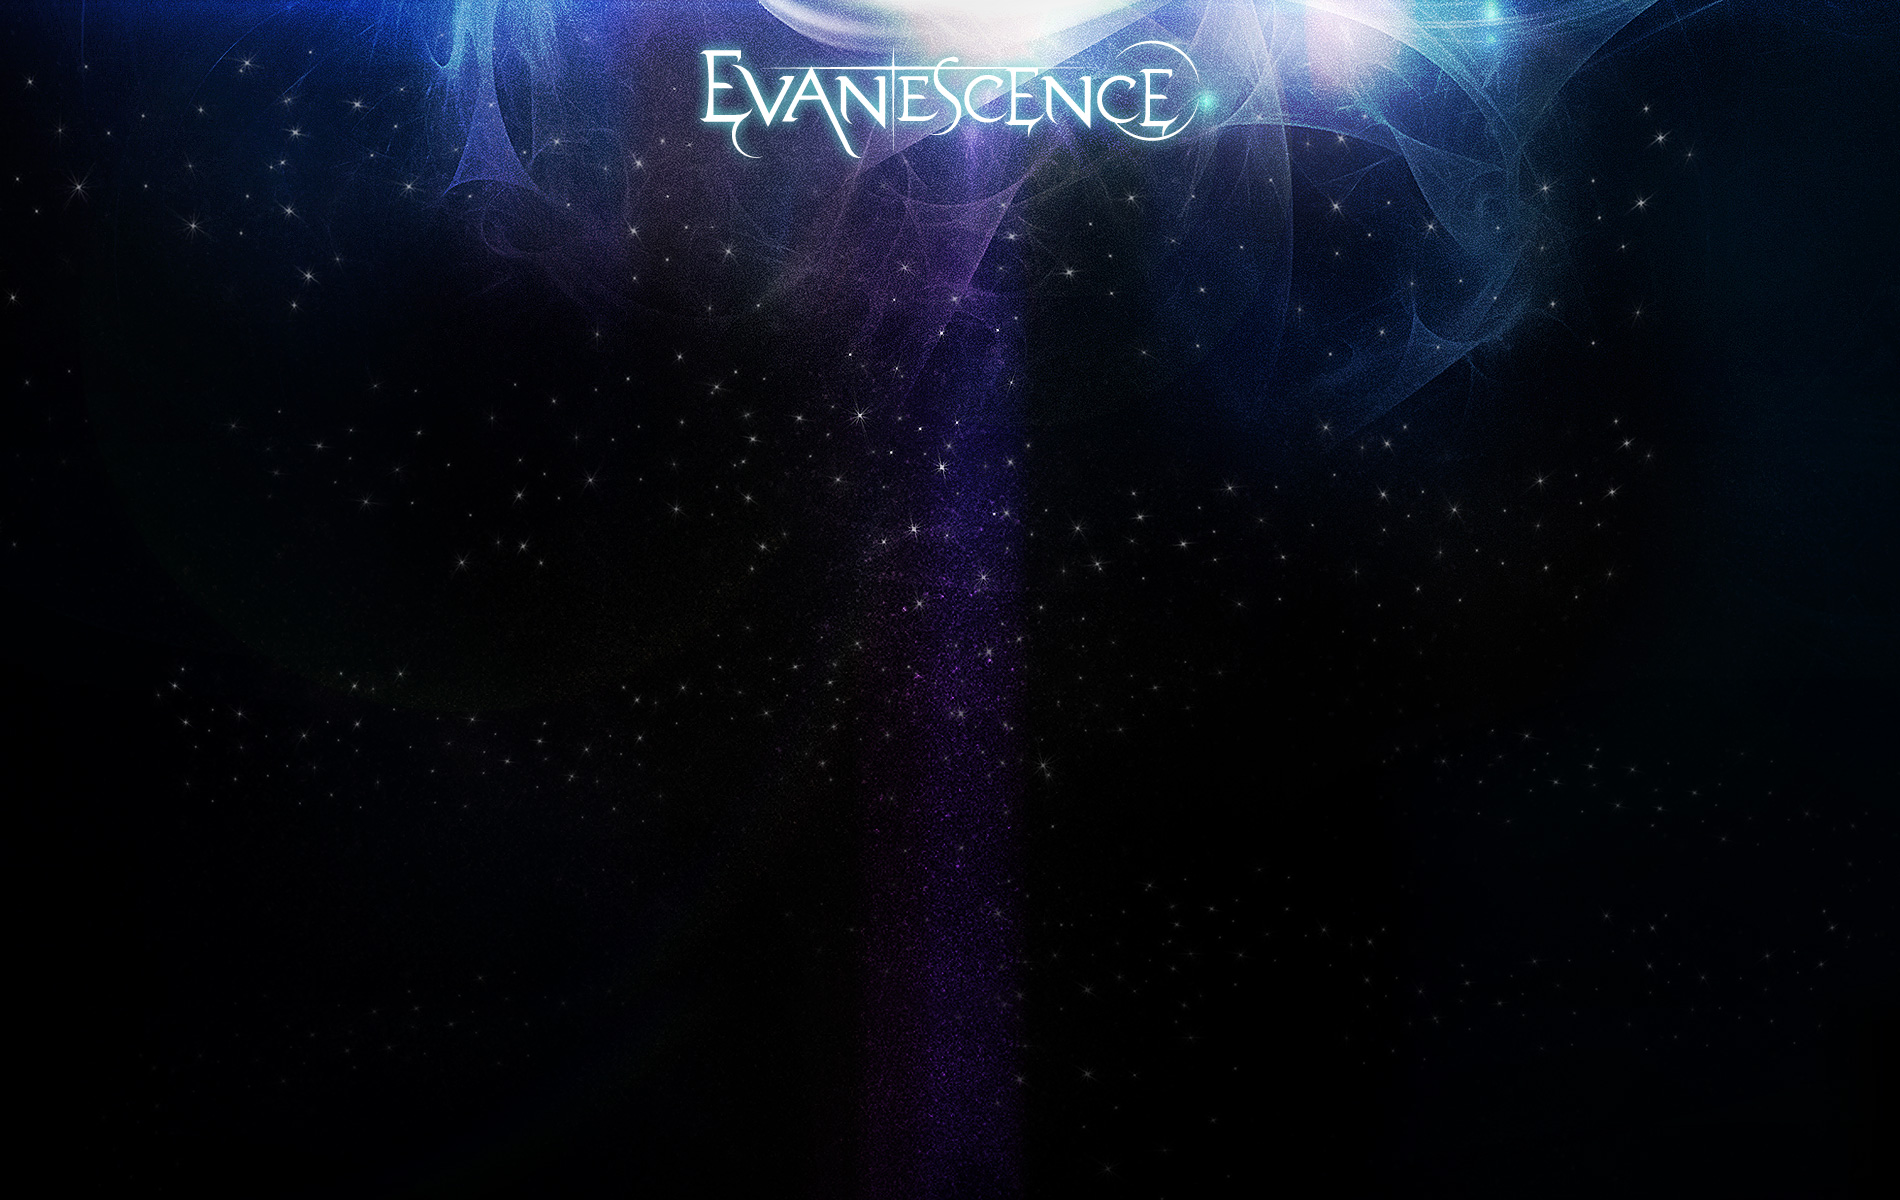 Evanescence images evanescence cool HD wallpaper and 1900x1200